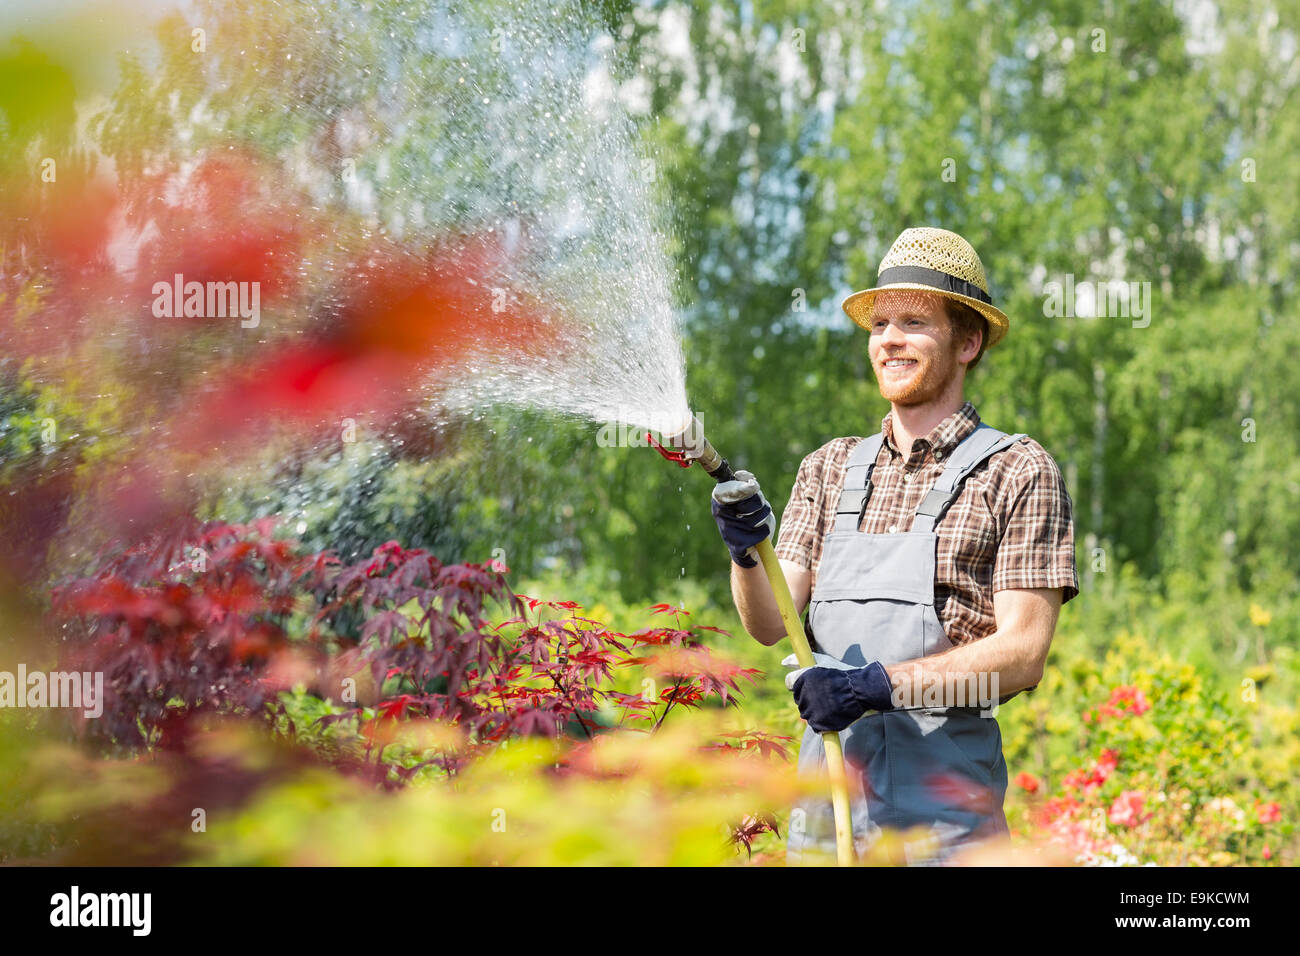 Smiling man watering plants at garden - Stock Image